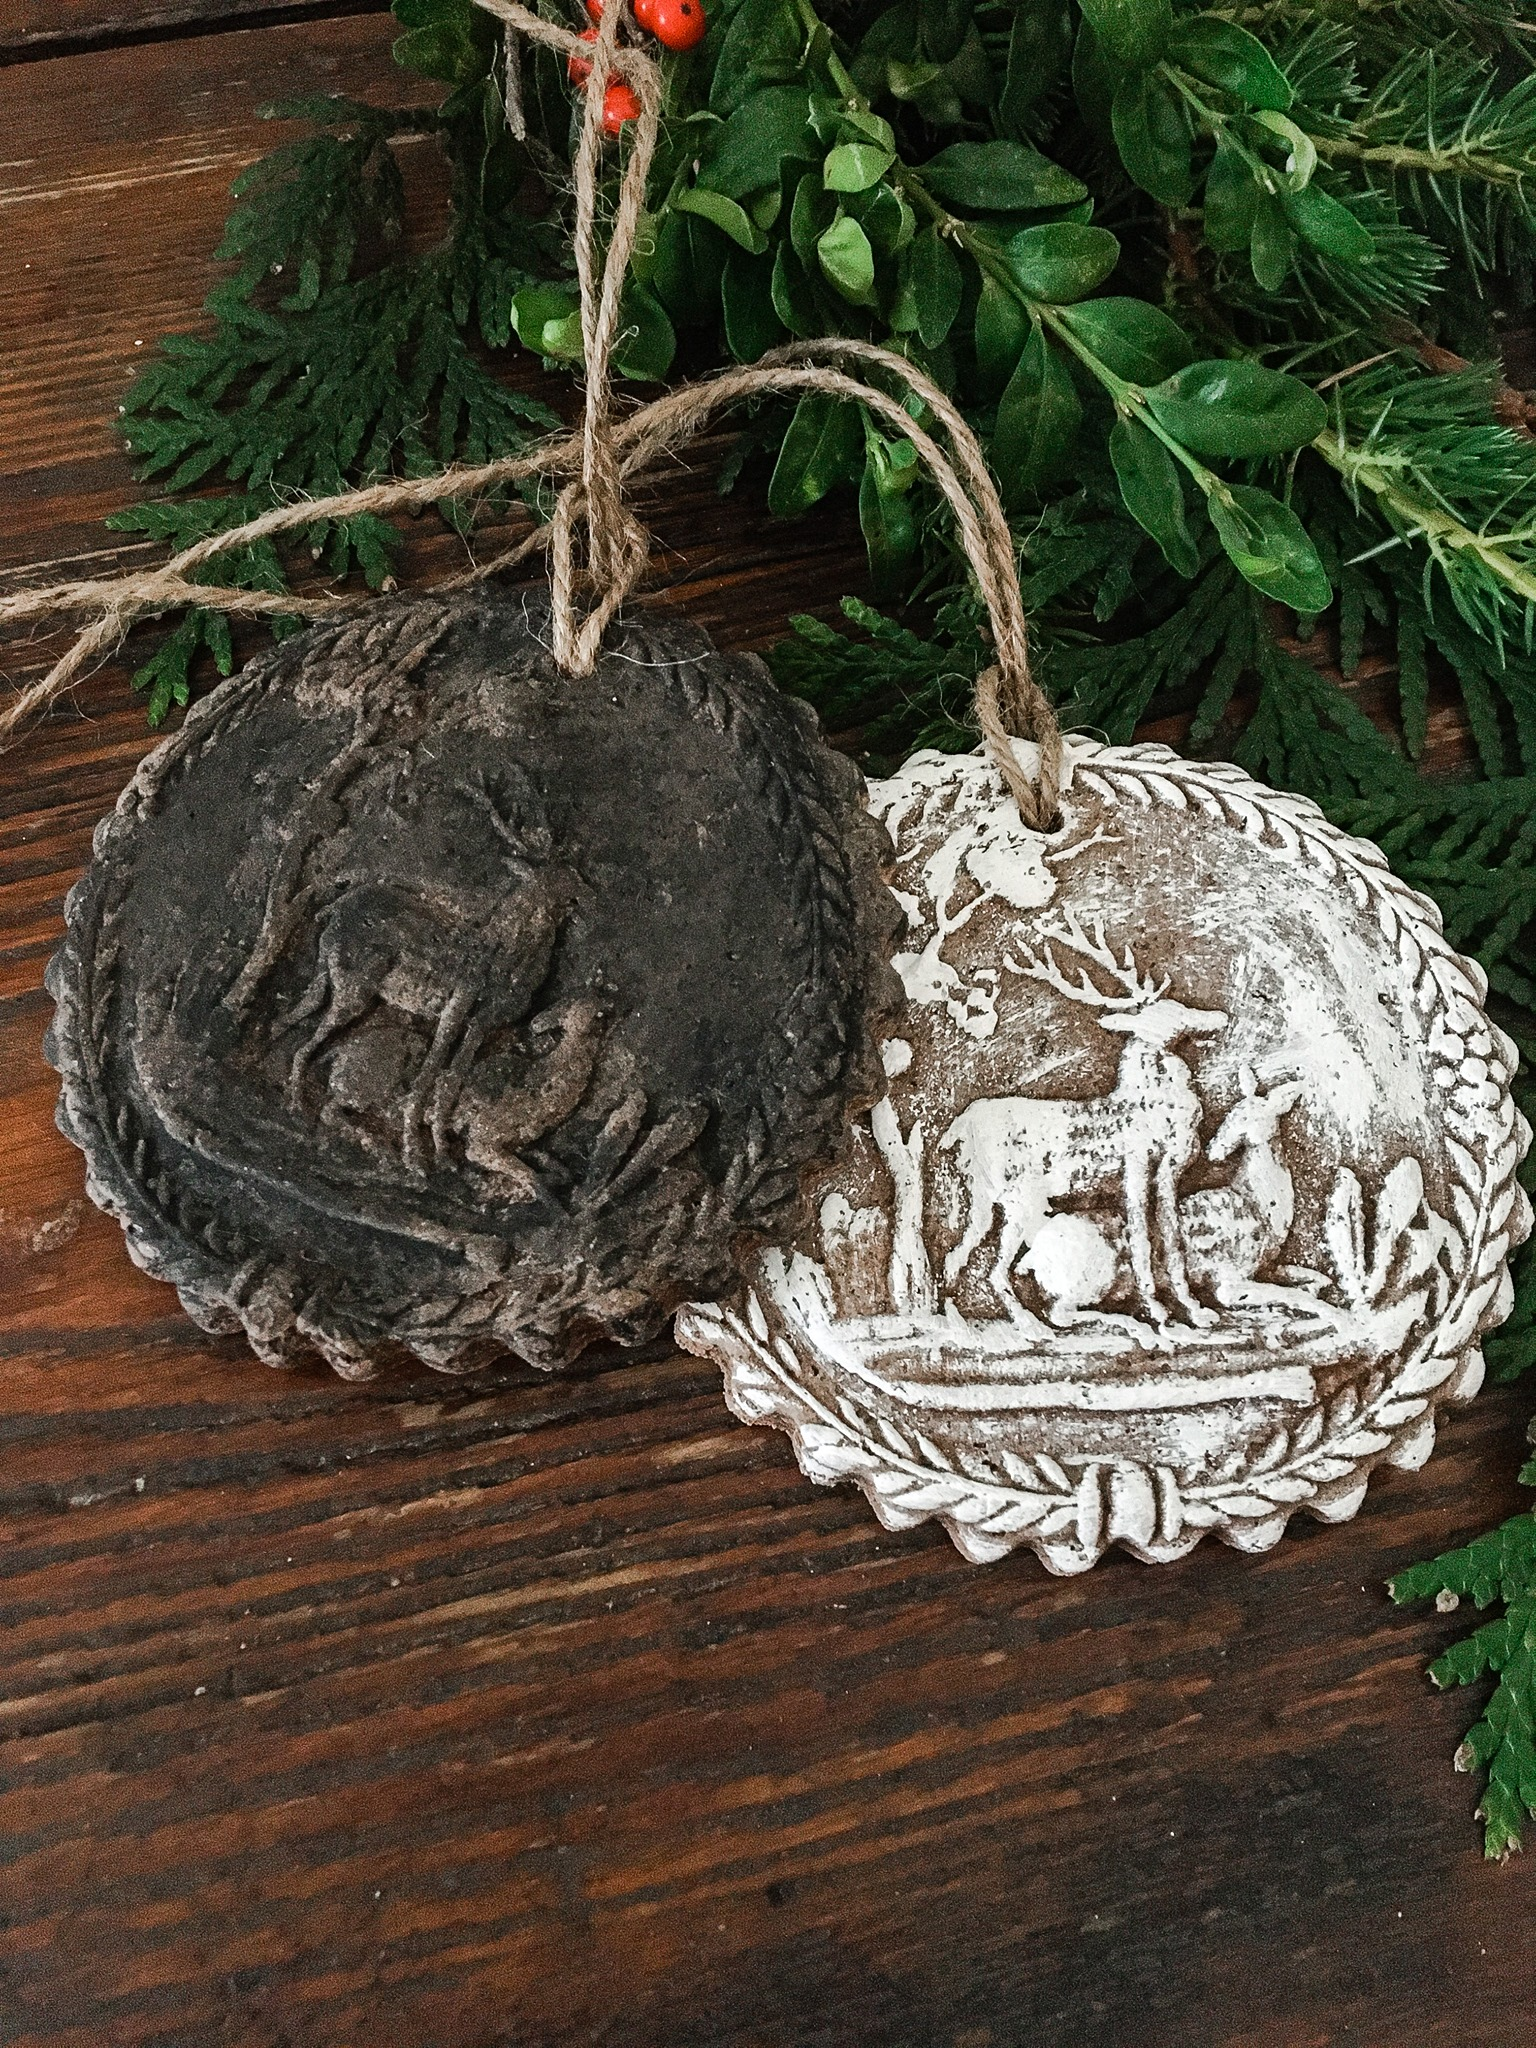 How to Make Handmade Cinnamon Ornaments with a Vintage Country Farmhouse Style